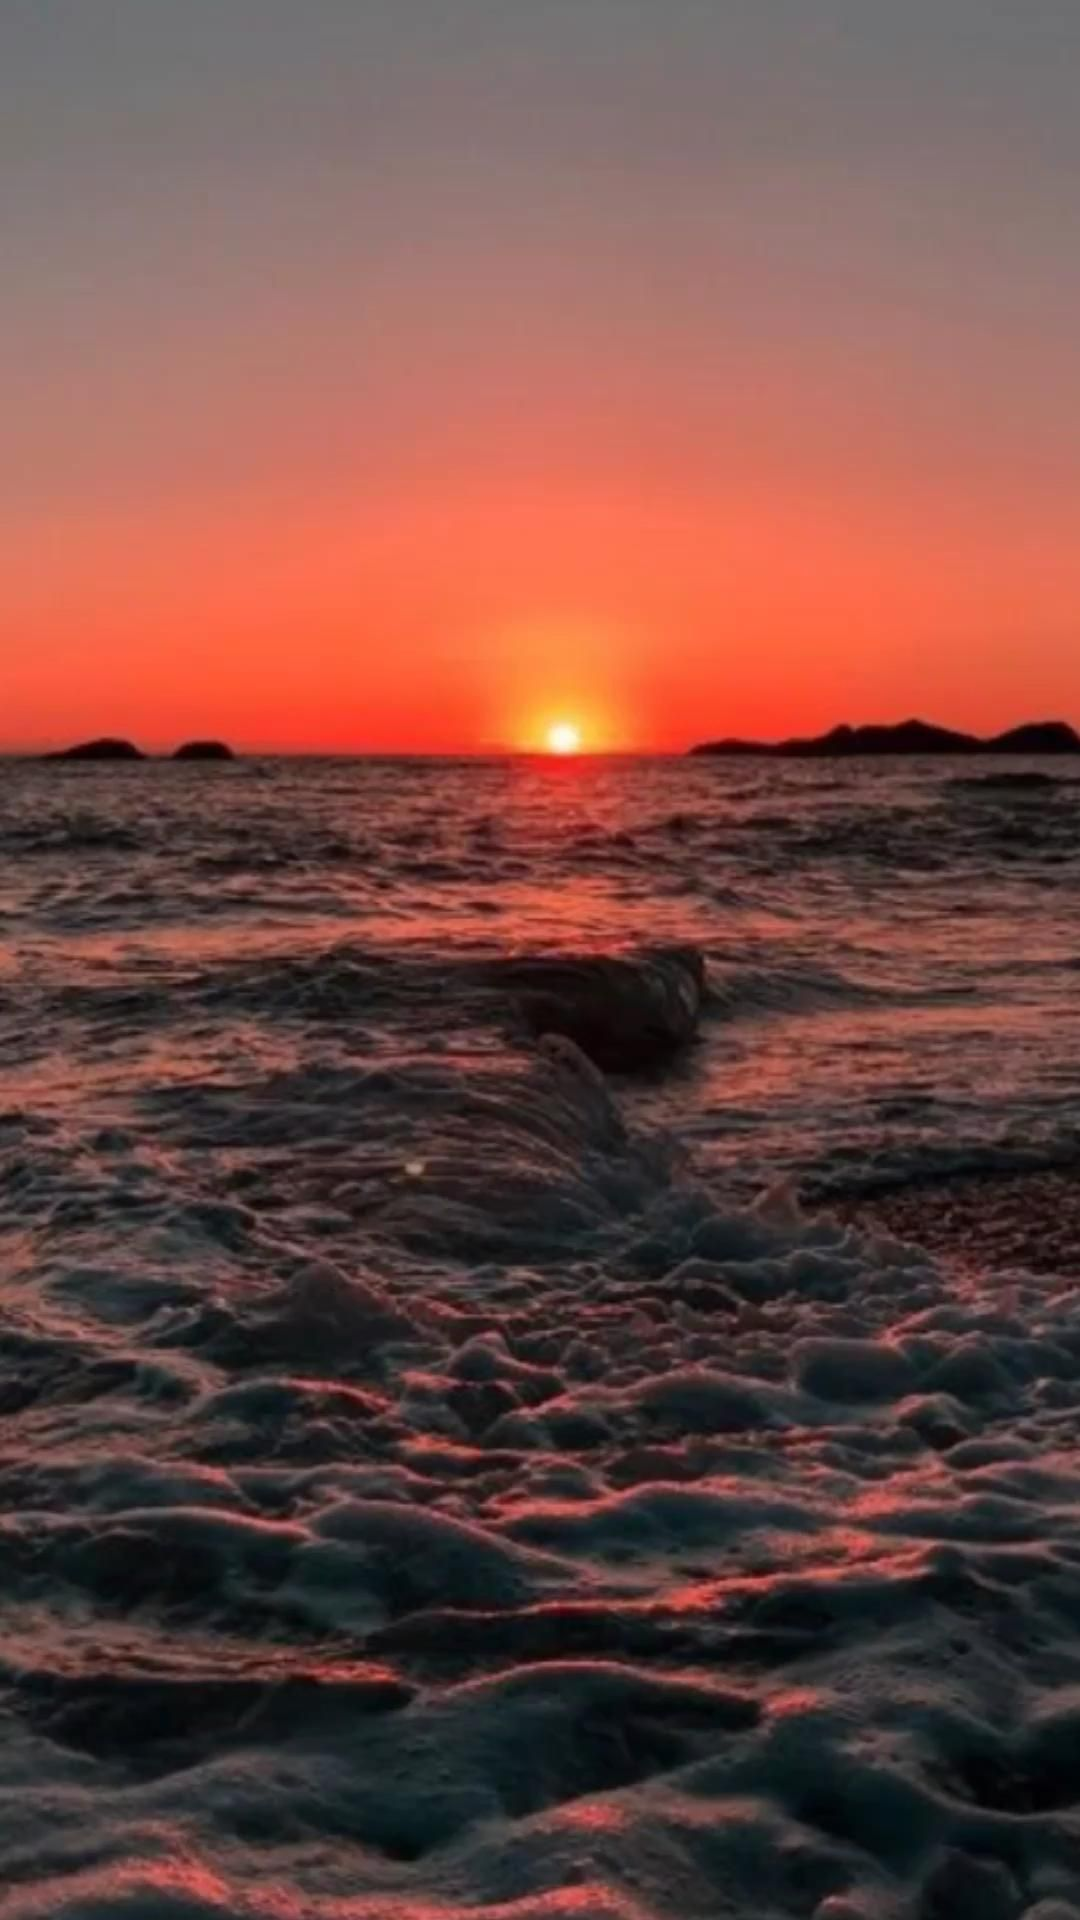 Red Sunset Mood Video Sunset Photography Ocean Sunset Photography Iphone Wallpaper Lights Aesthetic iphone live wallpaper gif